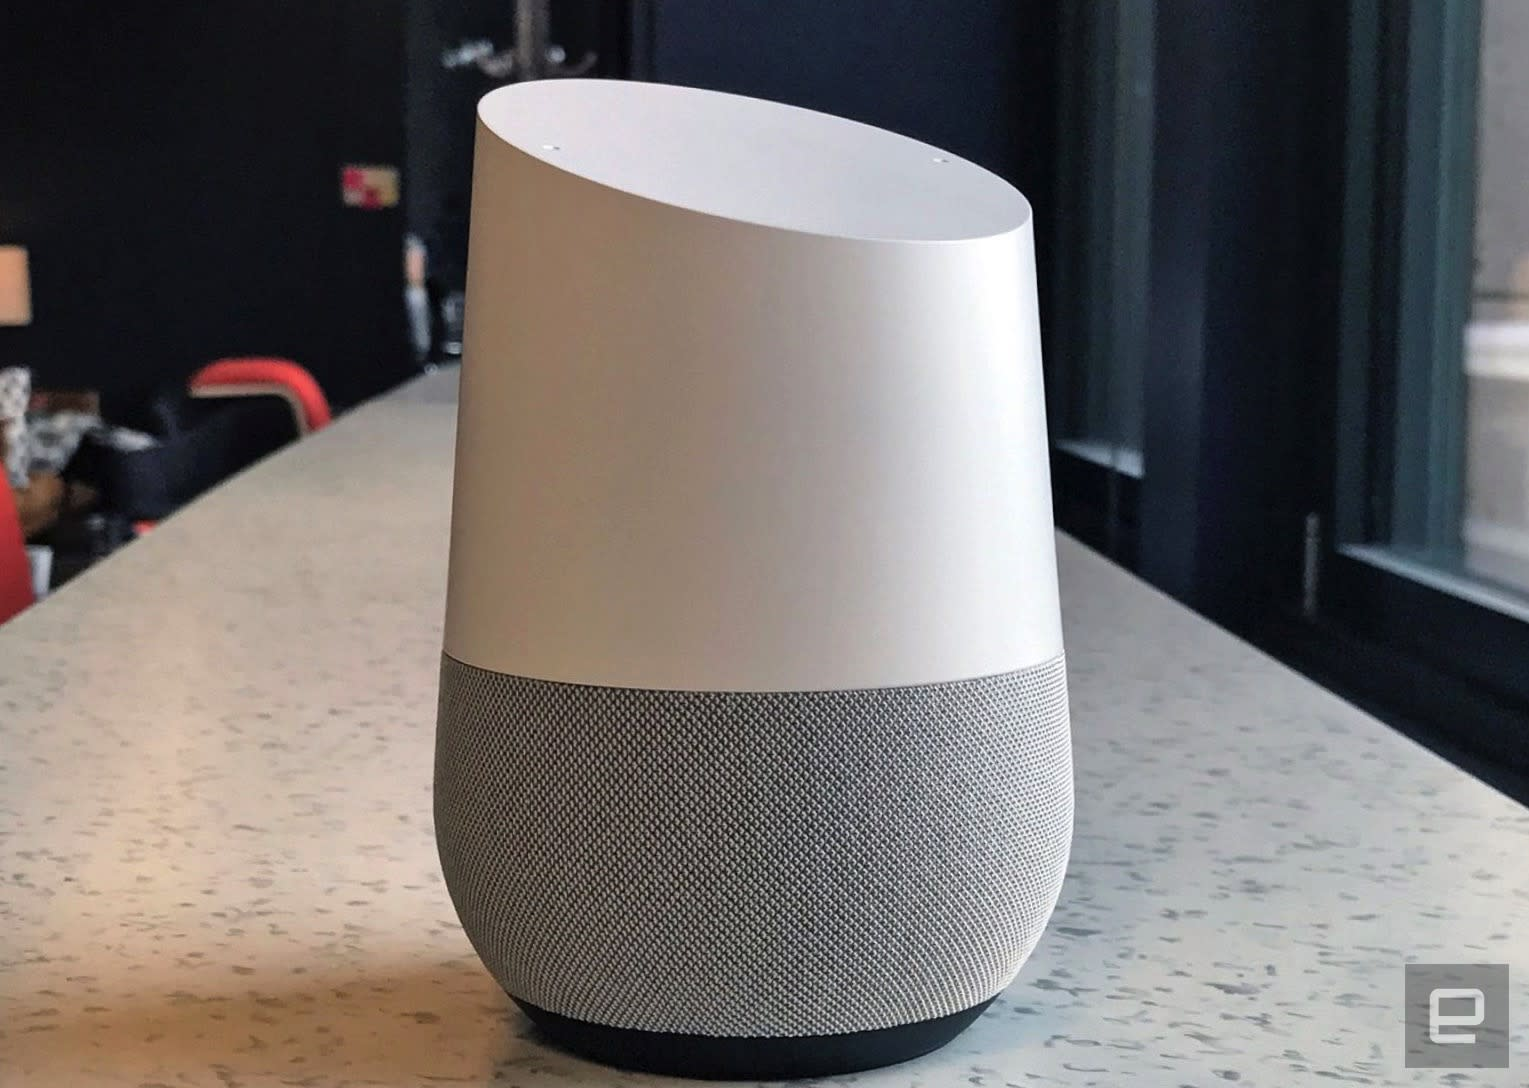 Custom My Design Assistant google assistant can speak spanish on home speakers | engadget